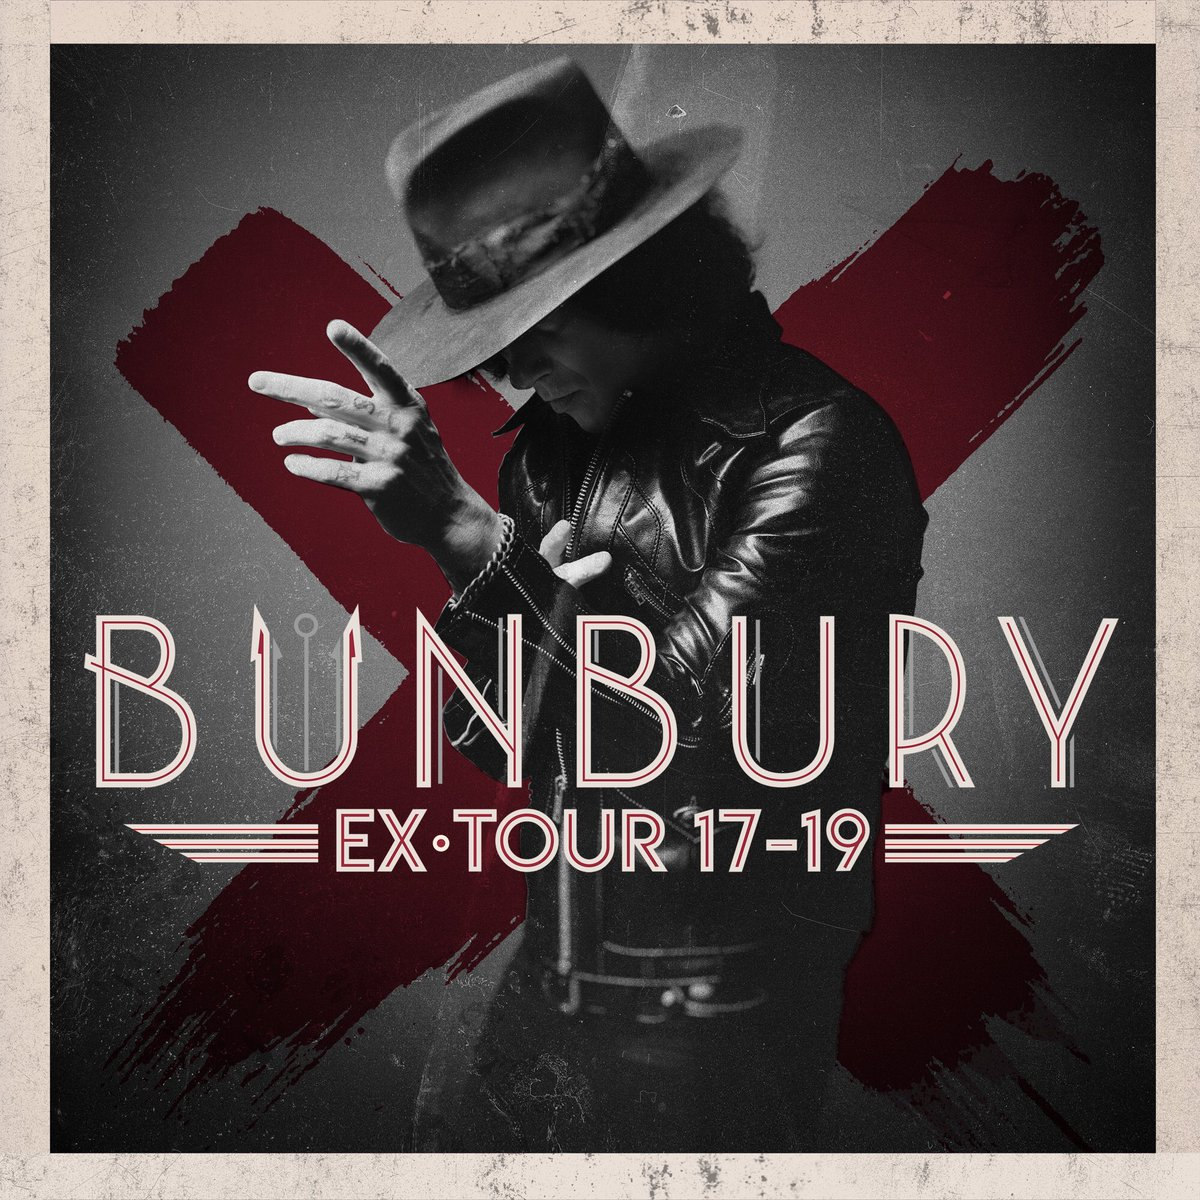 Enrique Bunbury on Twitter: